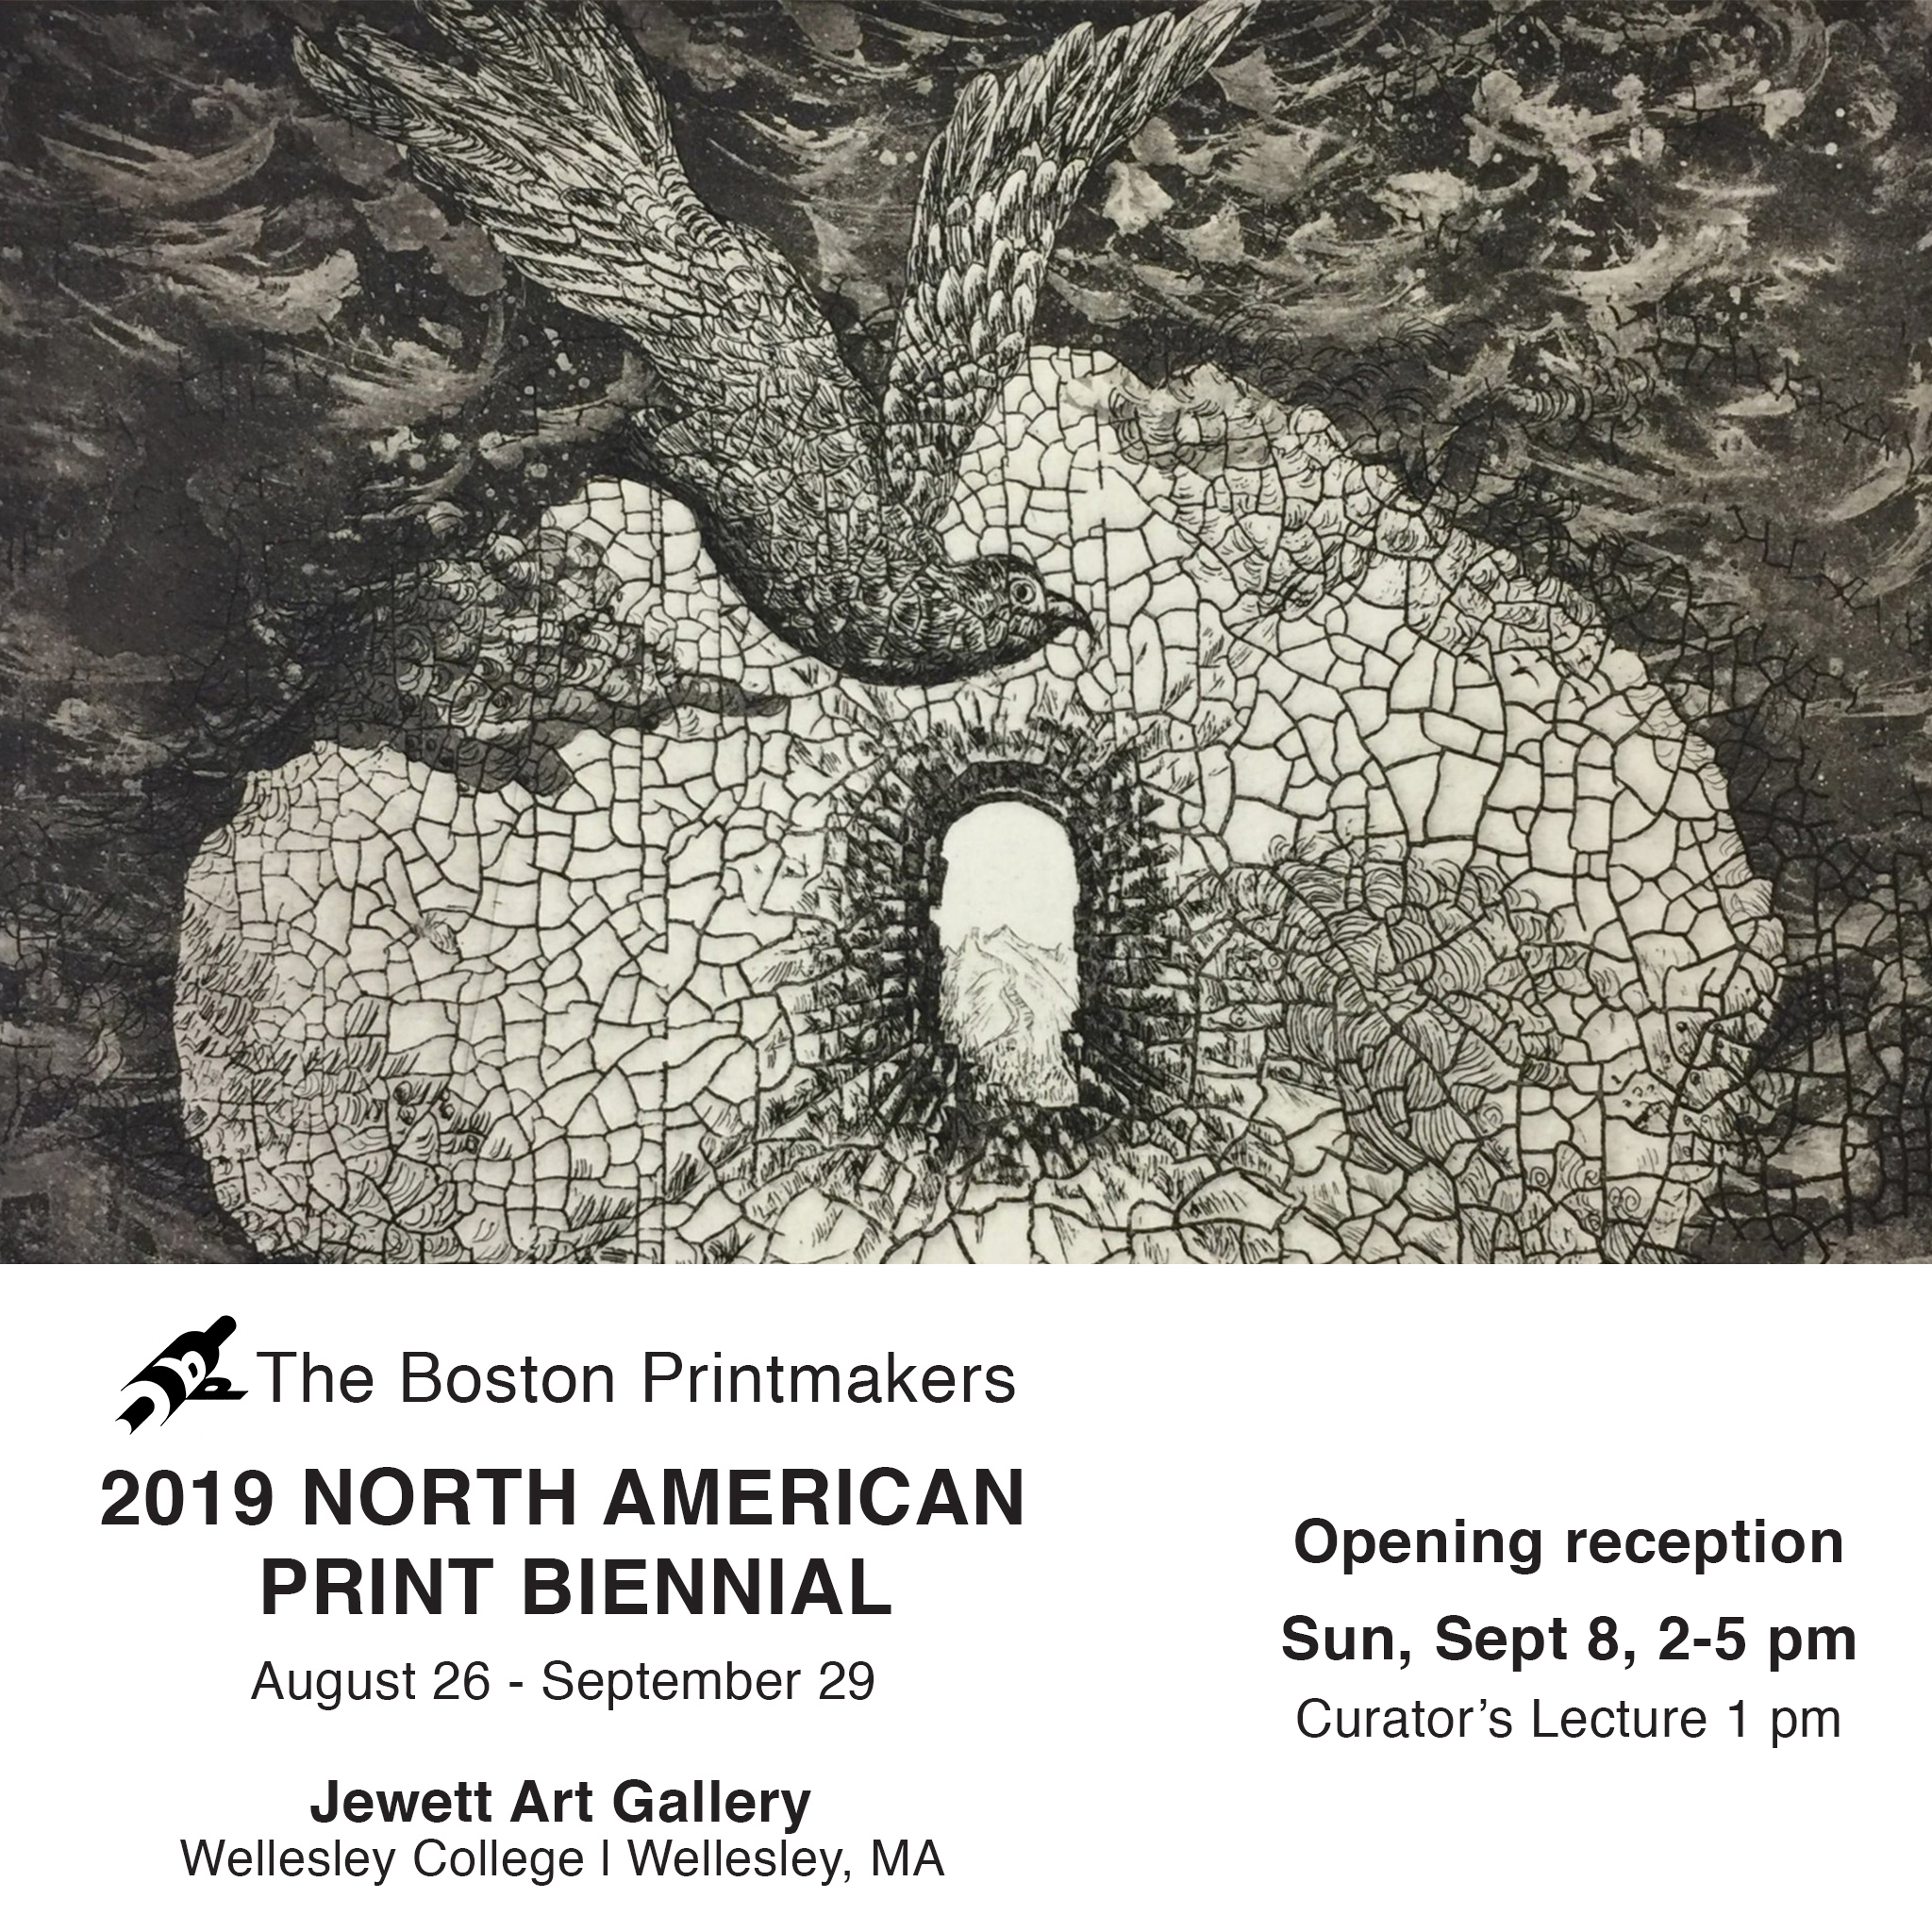 """The Boston Printmakers 2019 North American Print Biennial"" Exhibition at Jewett art gallery, Wellesley College, MA. August 26-Setember 2019."